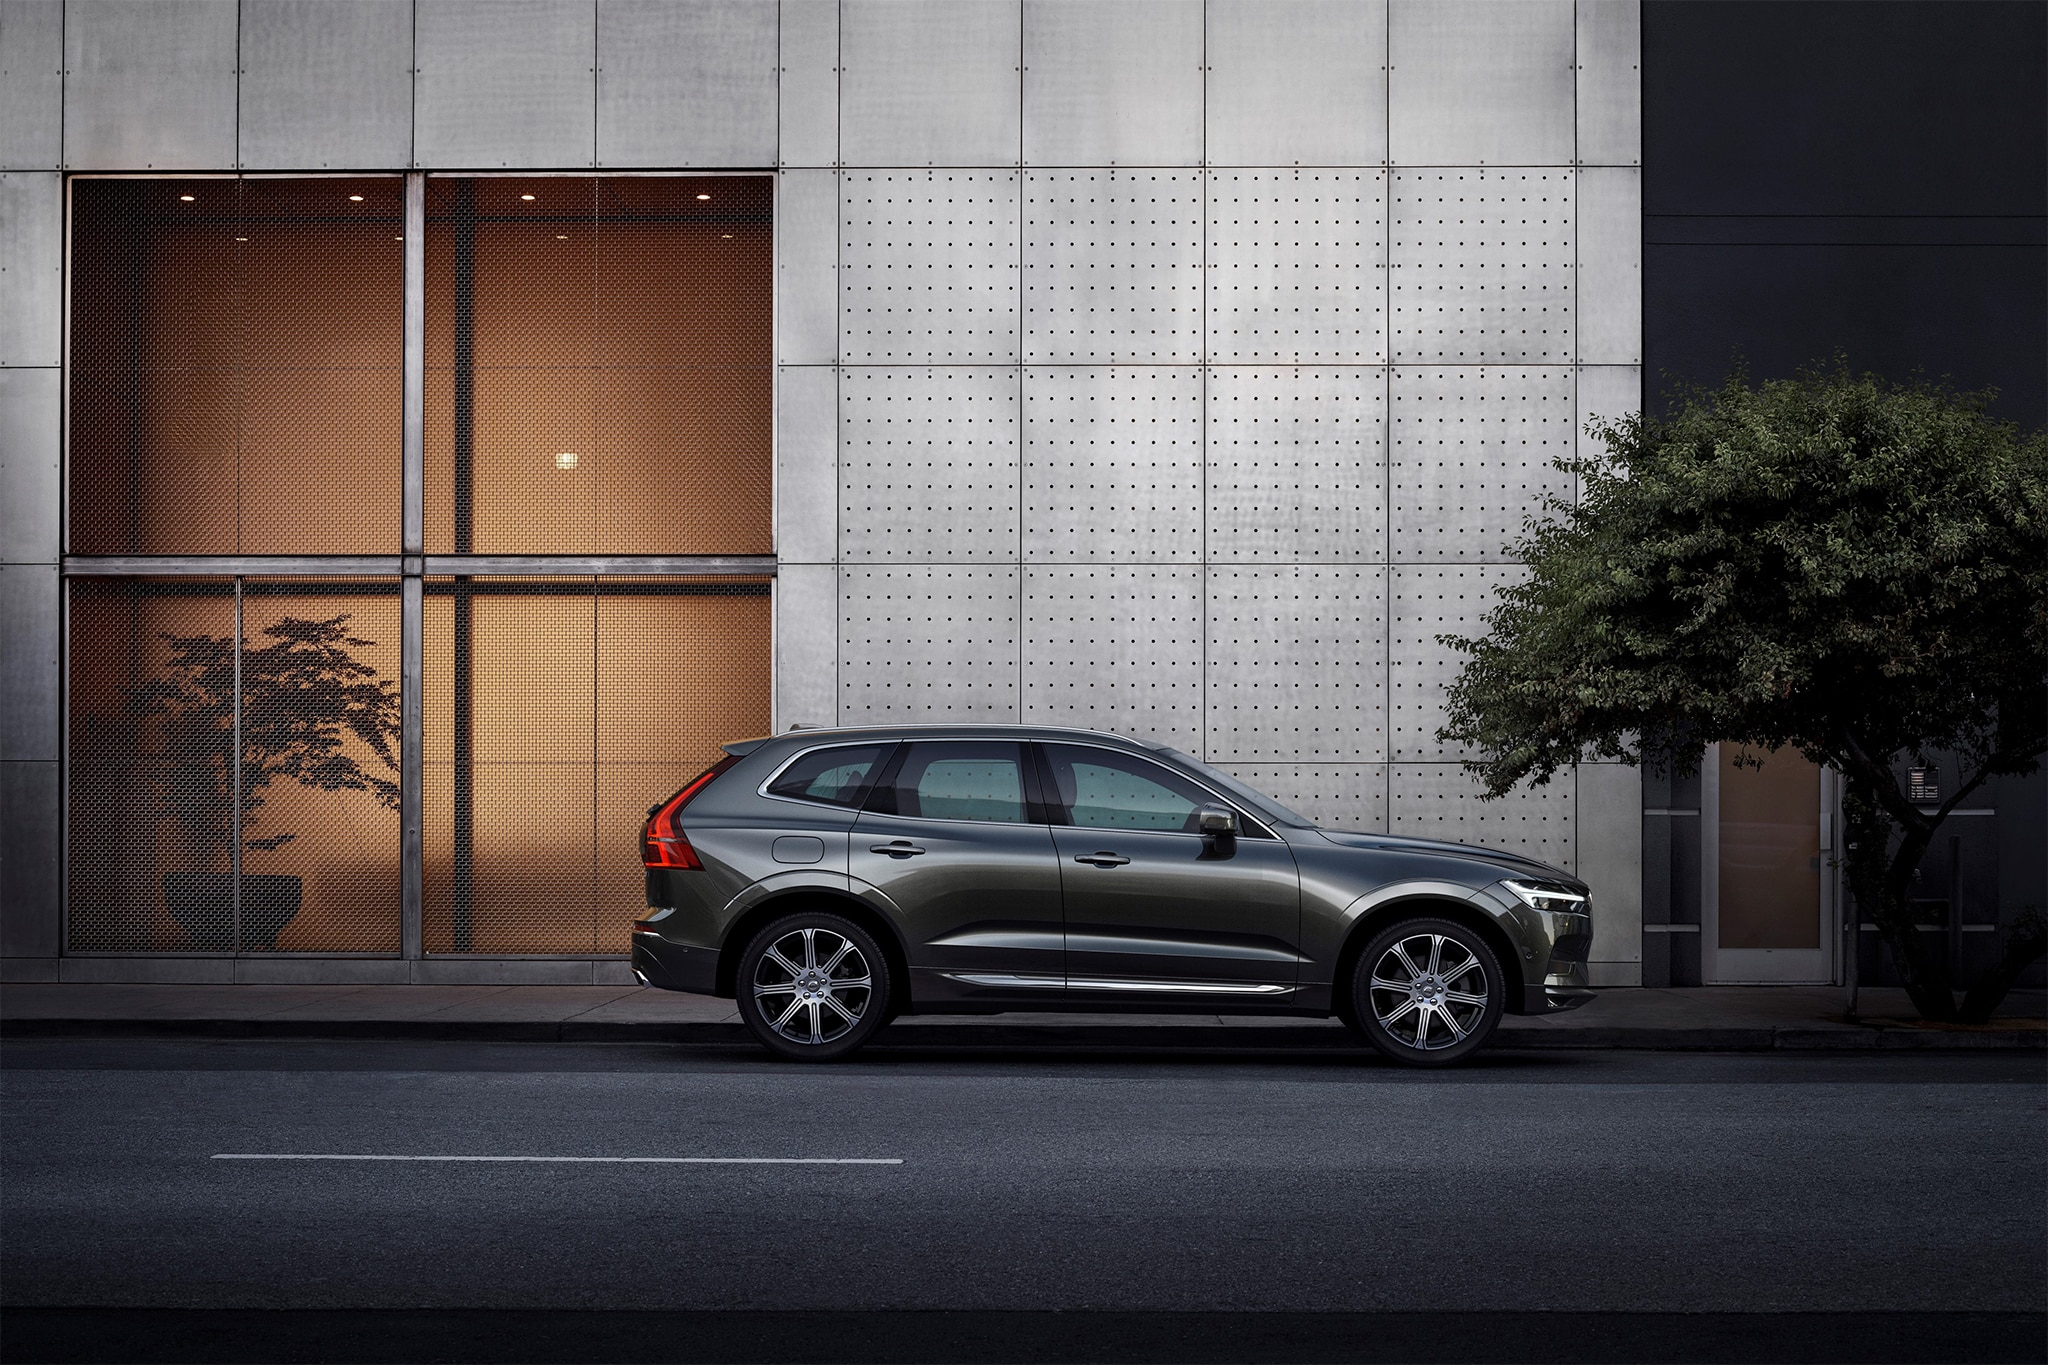 Volvo set to roll out assembled cars under 'Make in India' initiatives